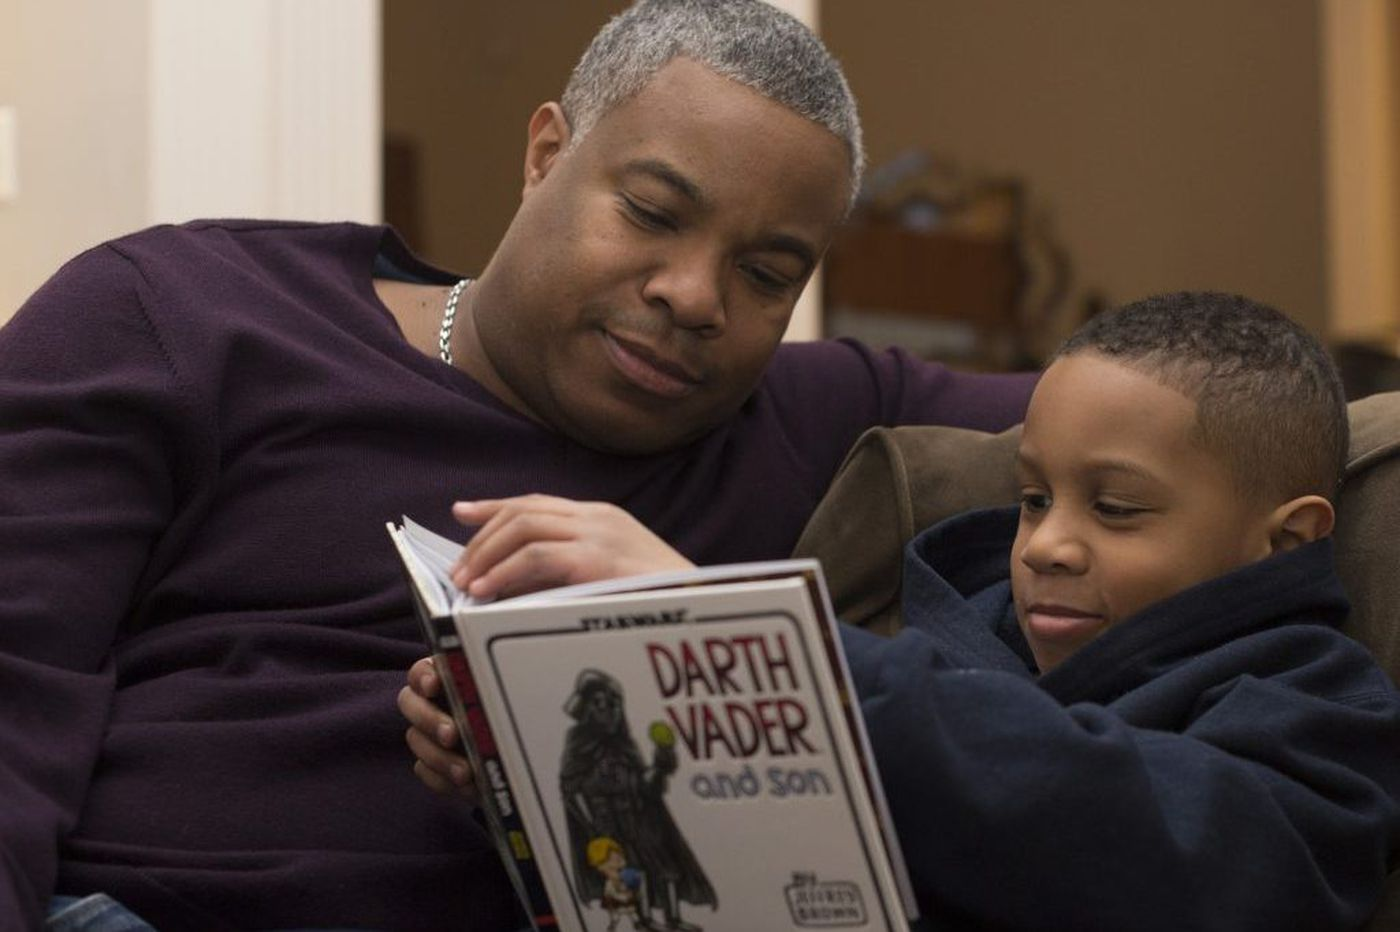 How can we get Philly kids reading at grade level by fourth grade? | Opinion